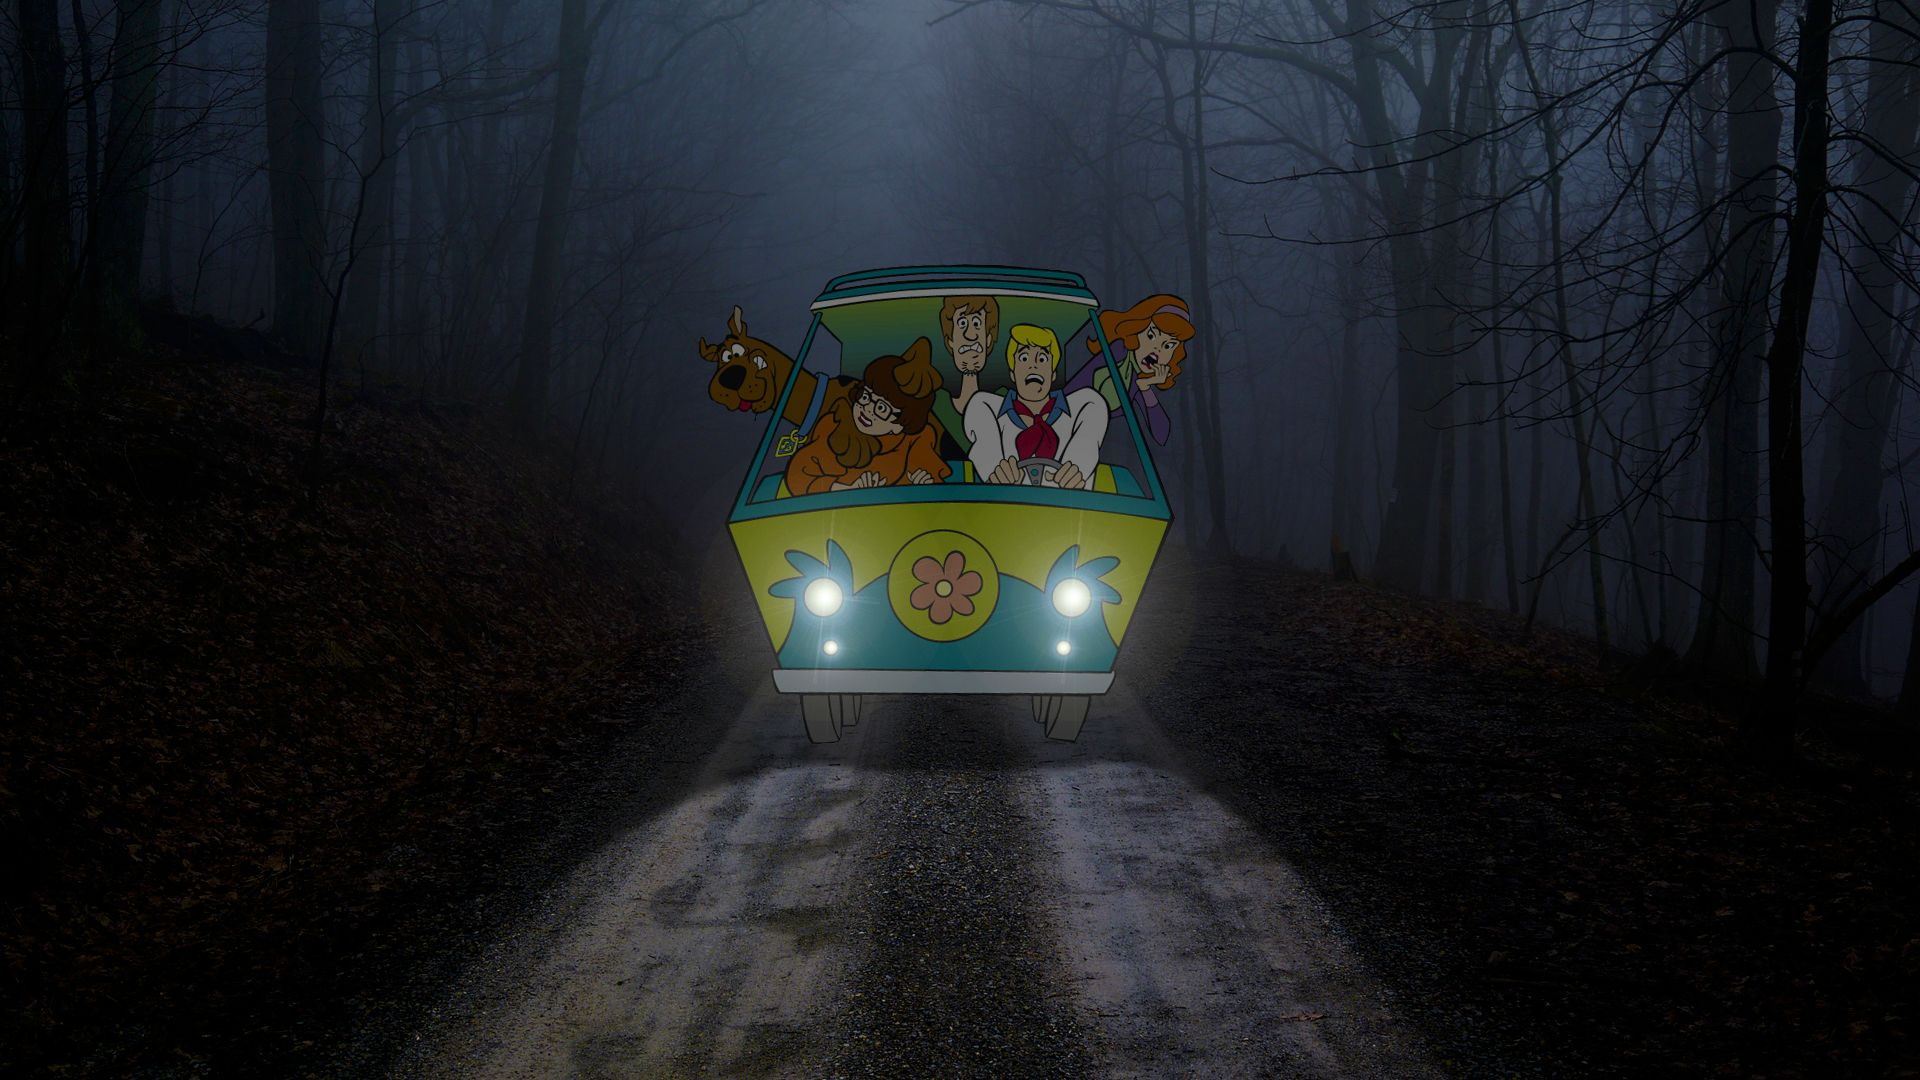 Scooby Doo gang wallpaper Mystery Machine van with Scooby and his 1920x1080